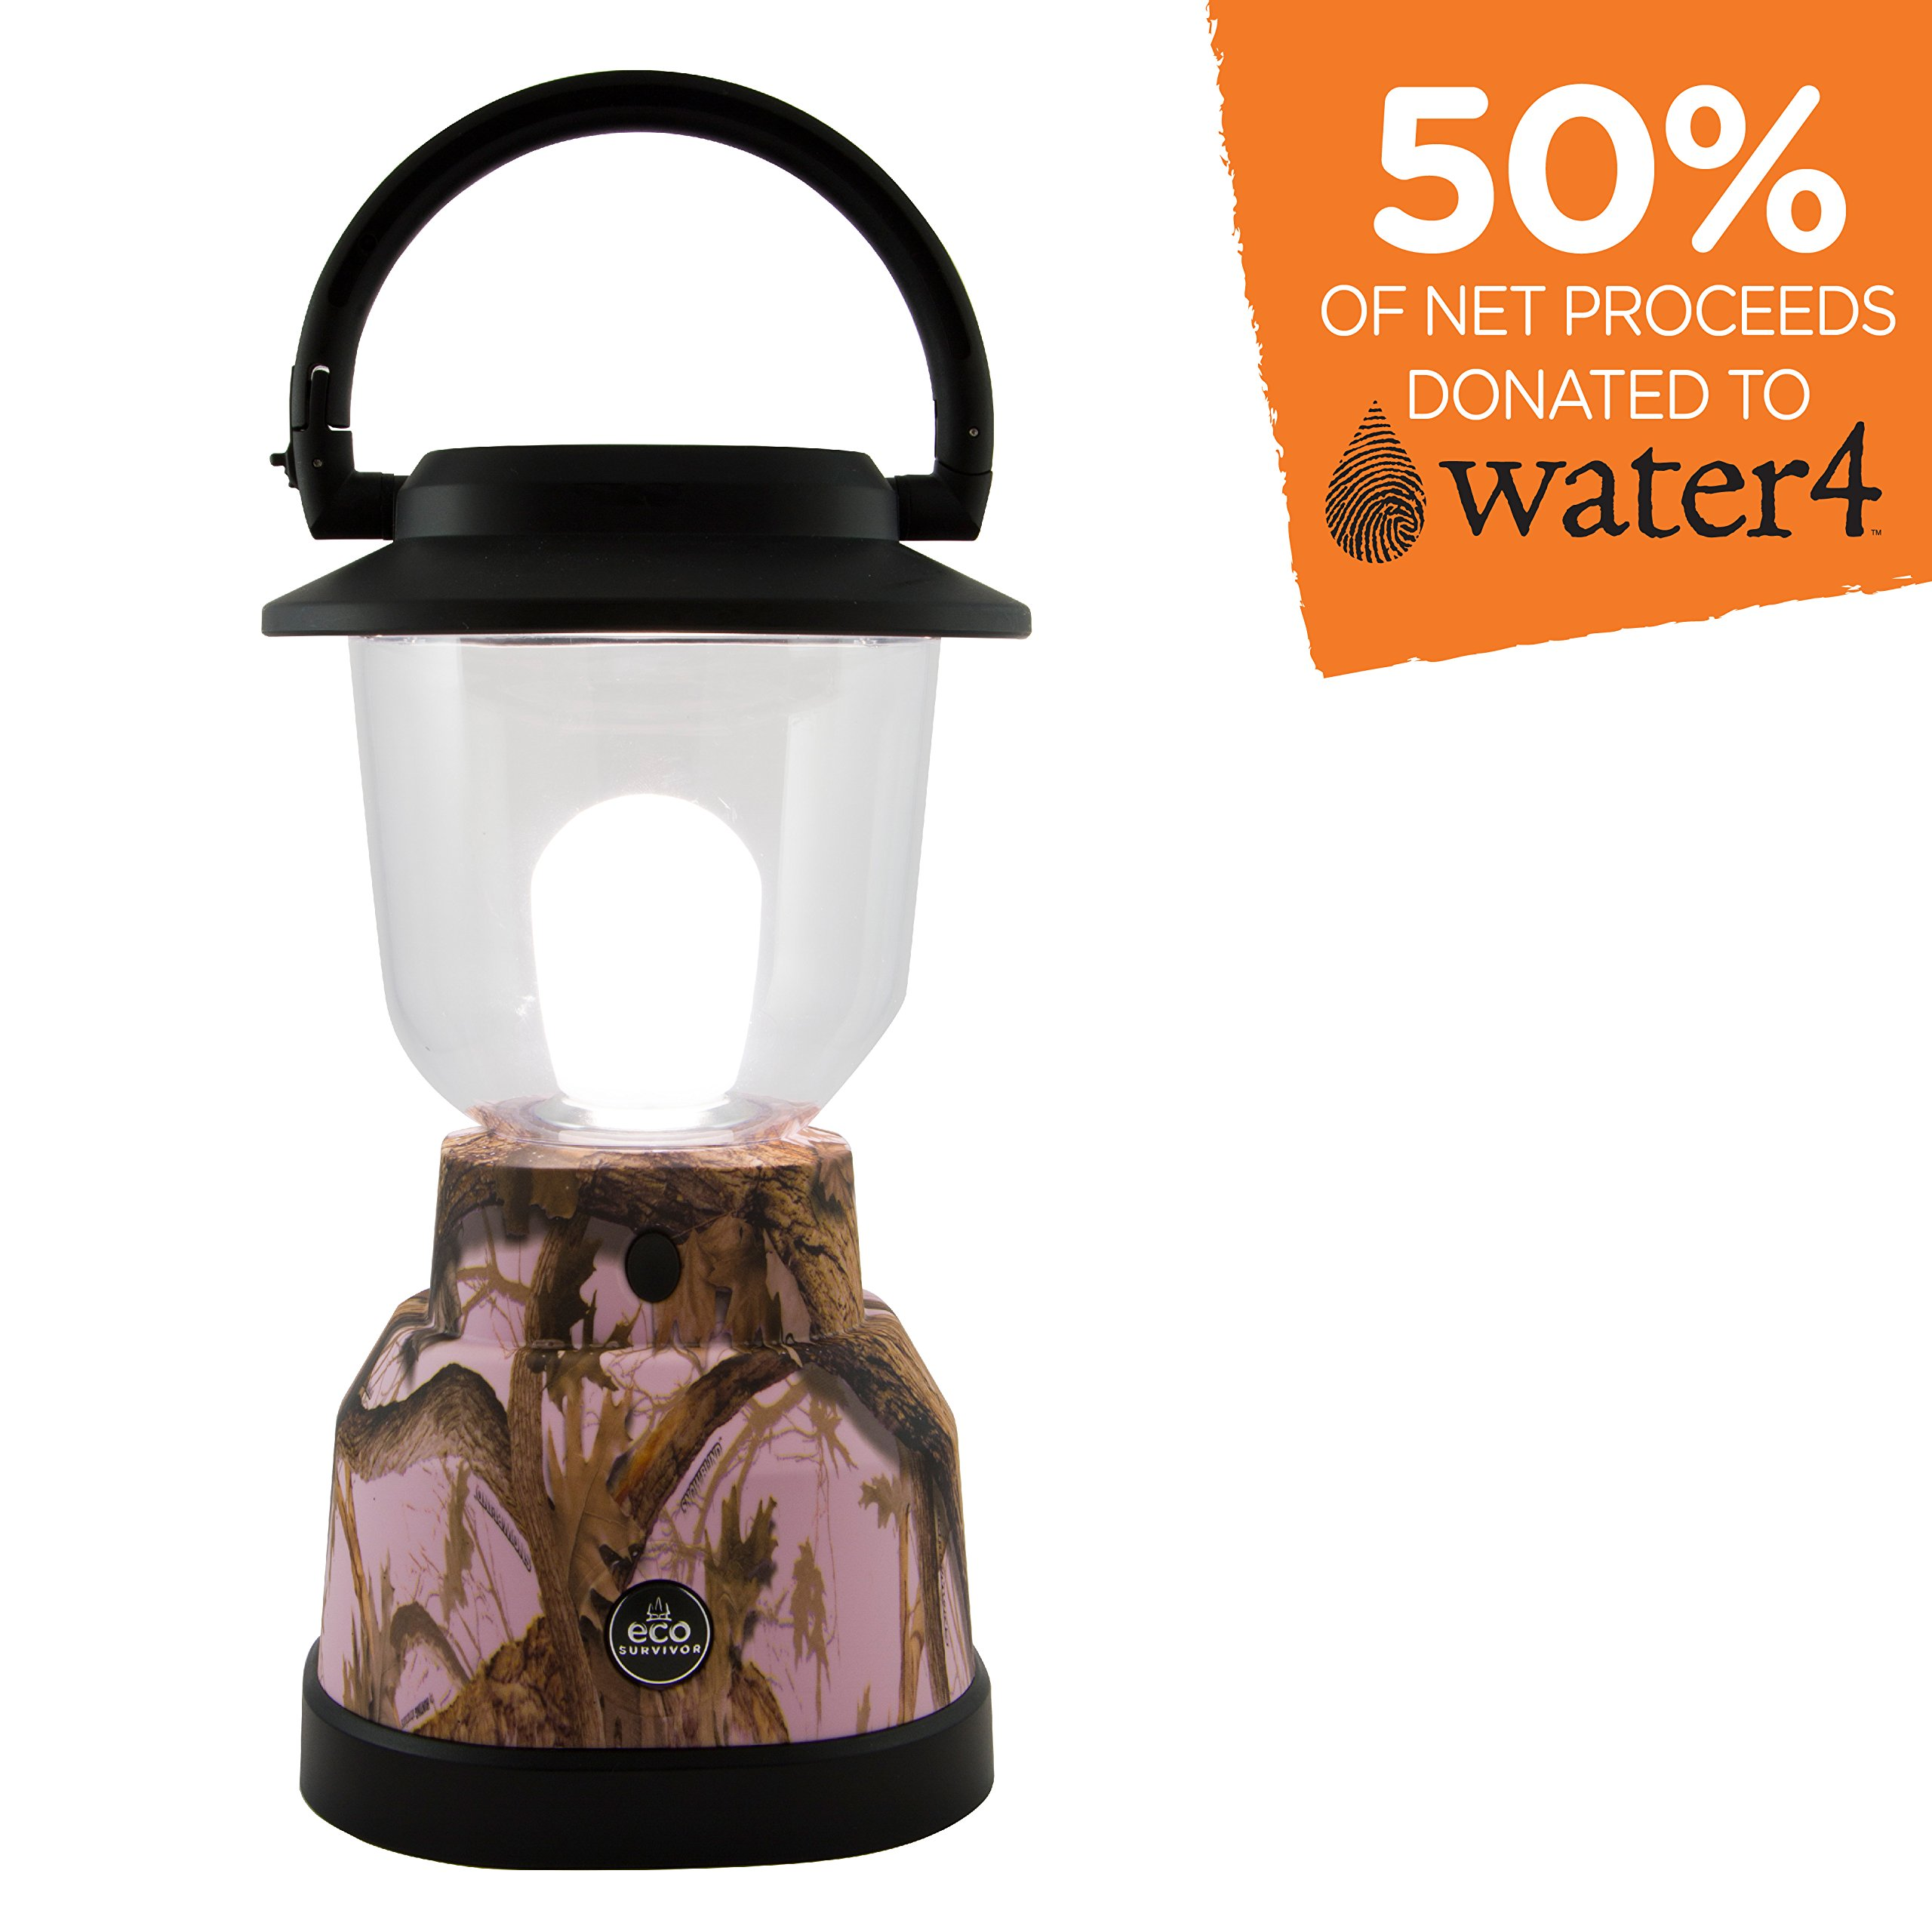 EcoSurvivor LED Lantern, Pink Camouflage, Outdoor, Waterproof, Lasts 180 Hours, Hanging Camping Lantern, Carabiner Handle, Great for Hiking, Storms, and Emergencies, 50% Charity Give Back, 11238